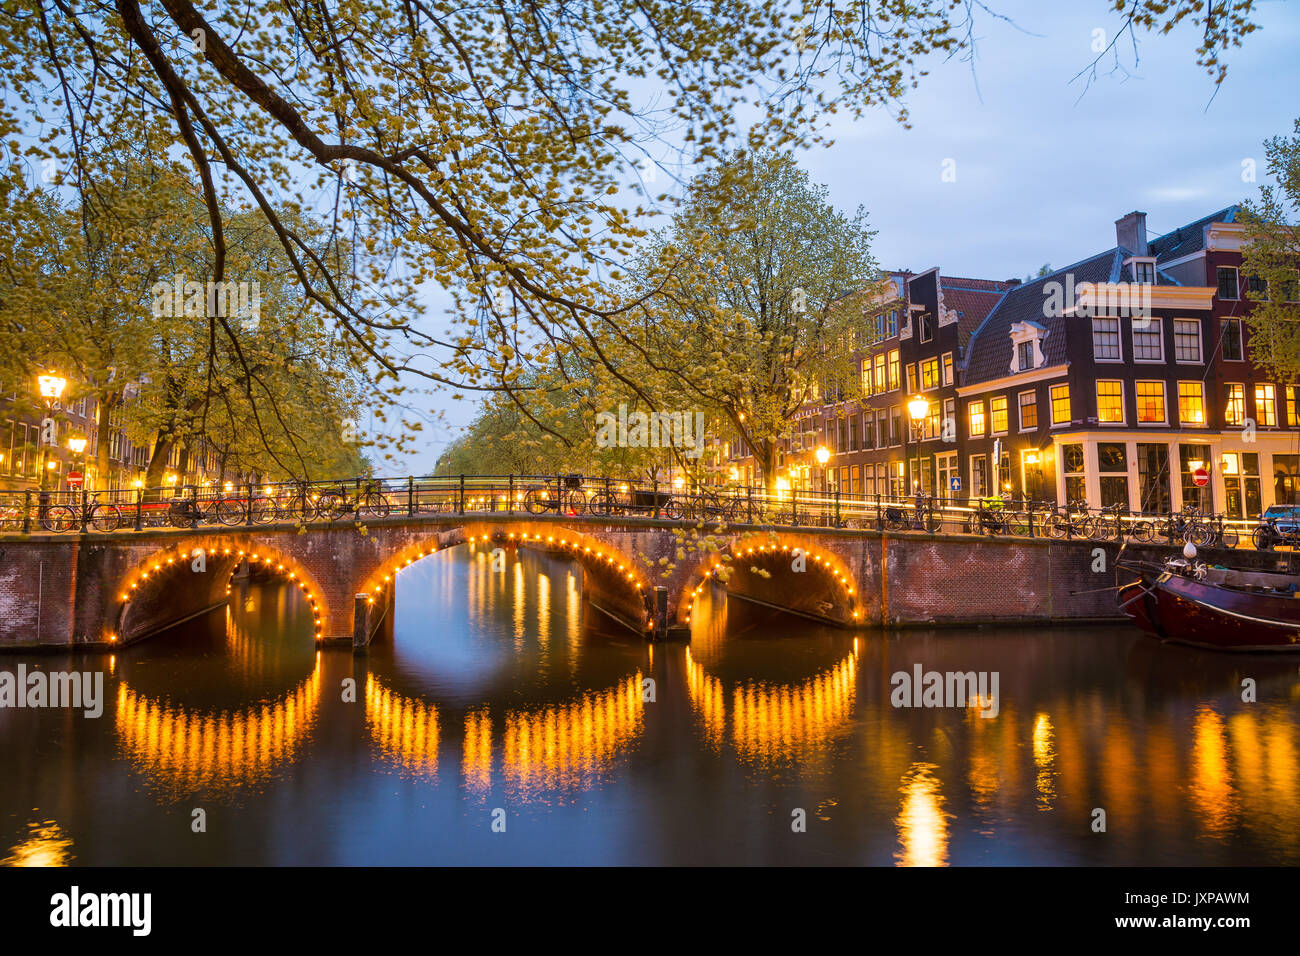 One of the famous canal of Amsterdam, the Netherlands at dusk. - Stock Image